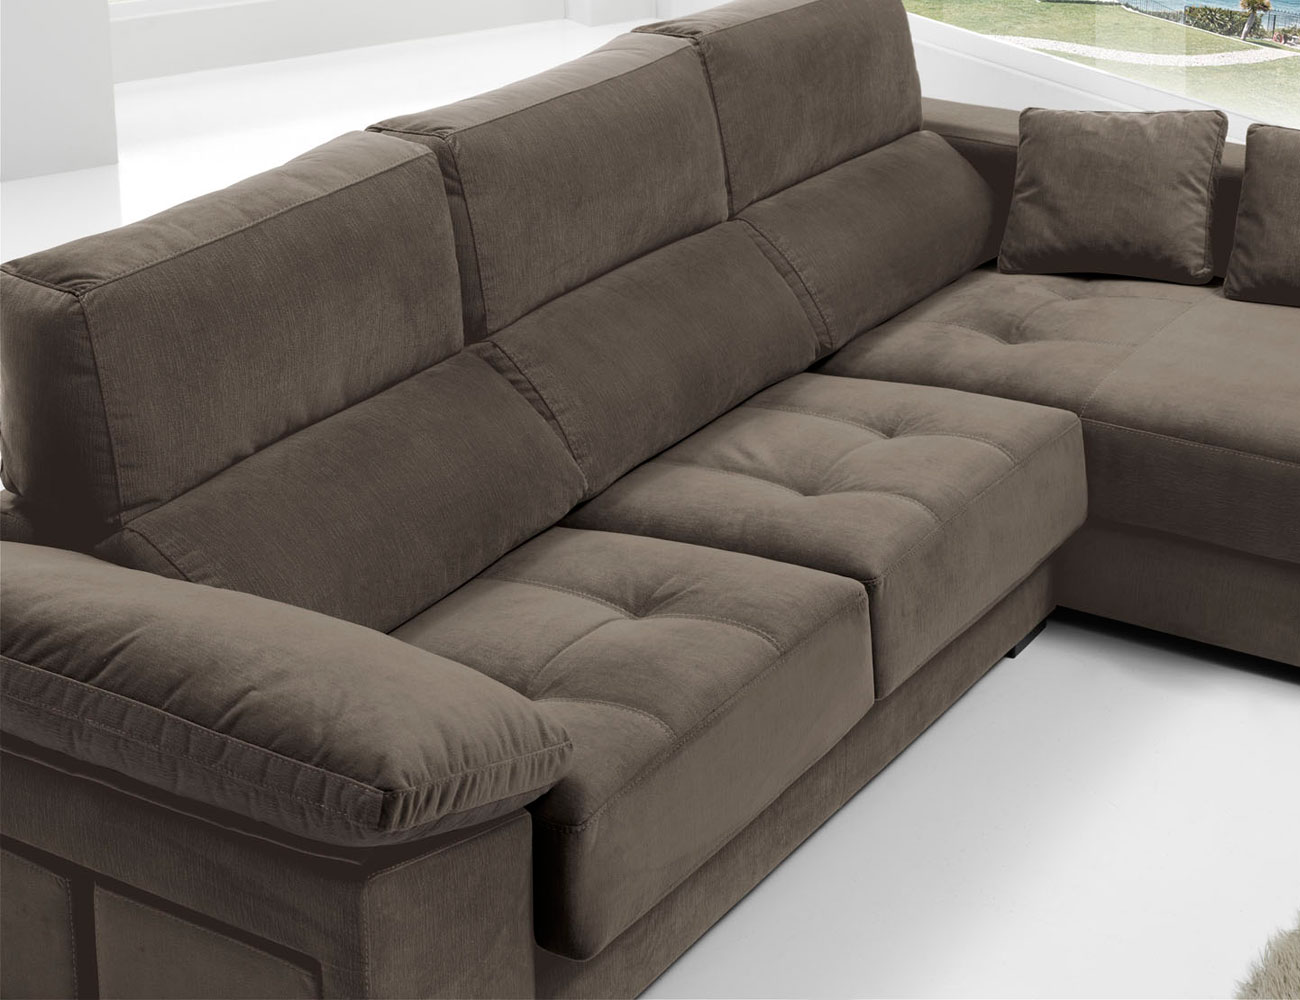 Sofa chaiselongue anti manchas bering pouf 273